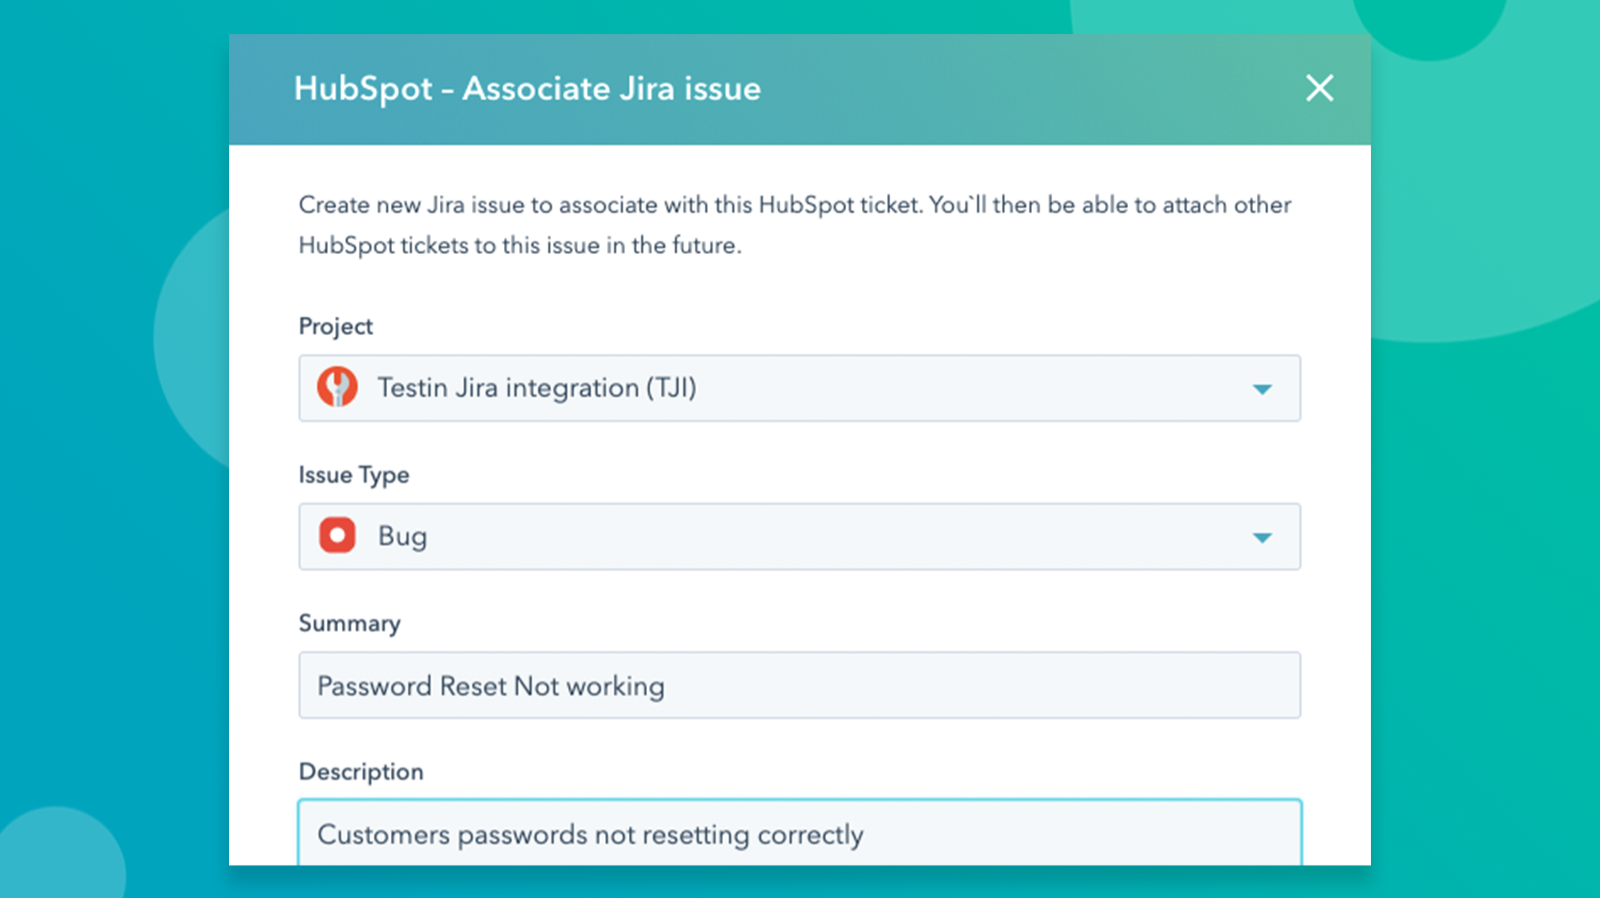 Screenshot showing the creation of a new Jira issue and associating it with a HubSpot ticket